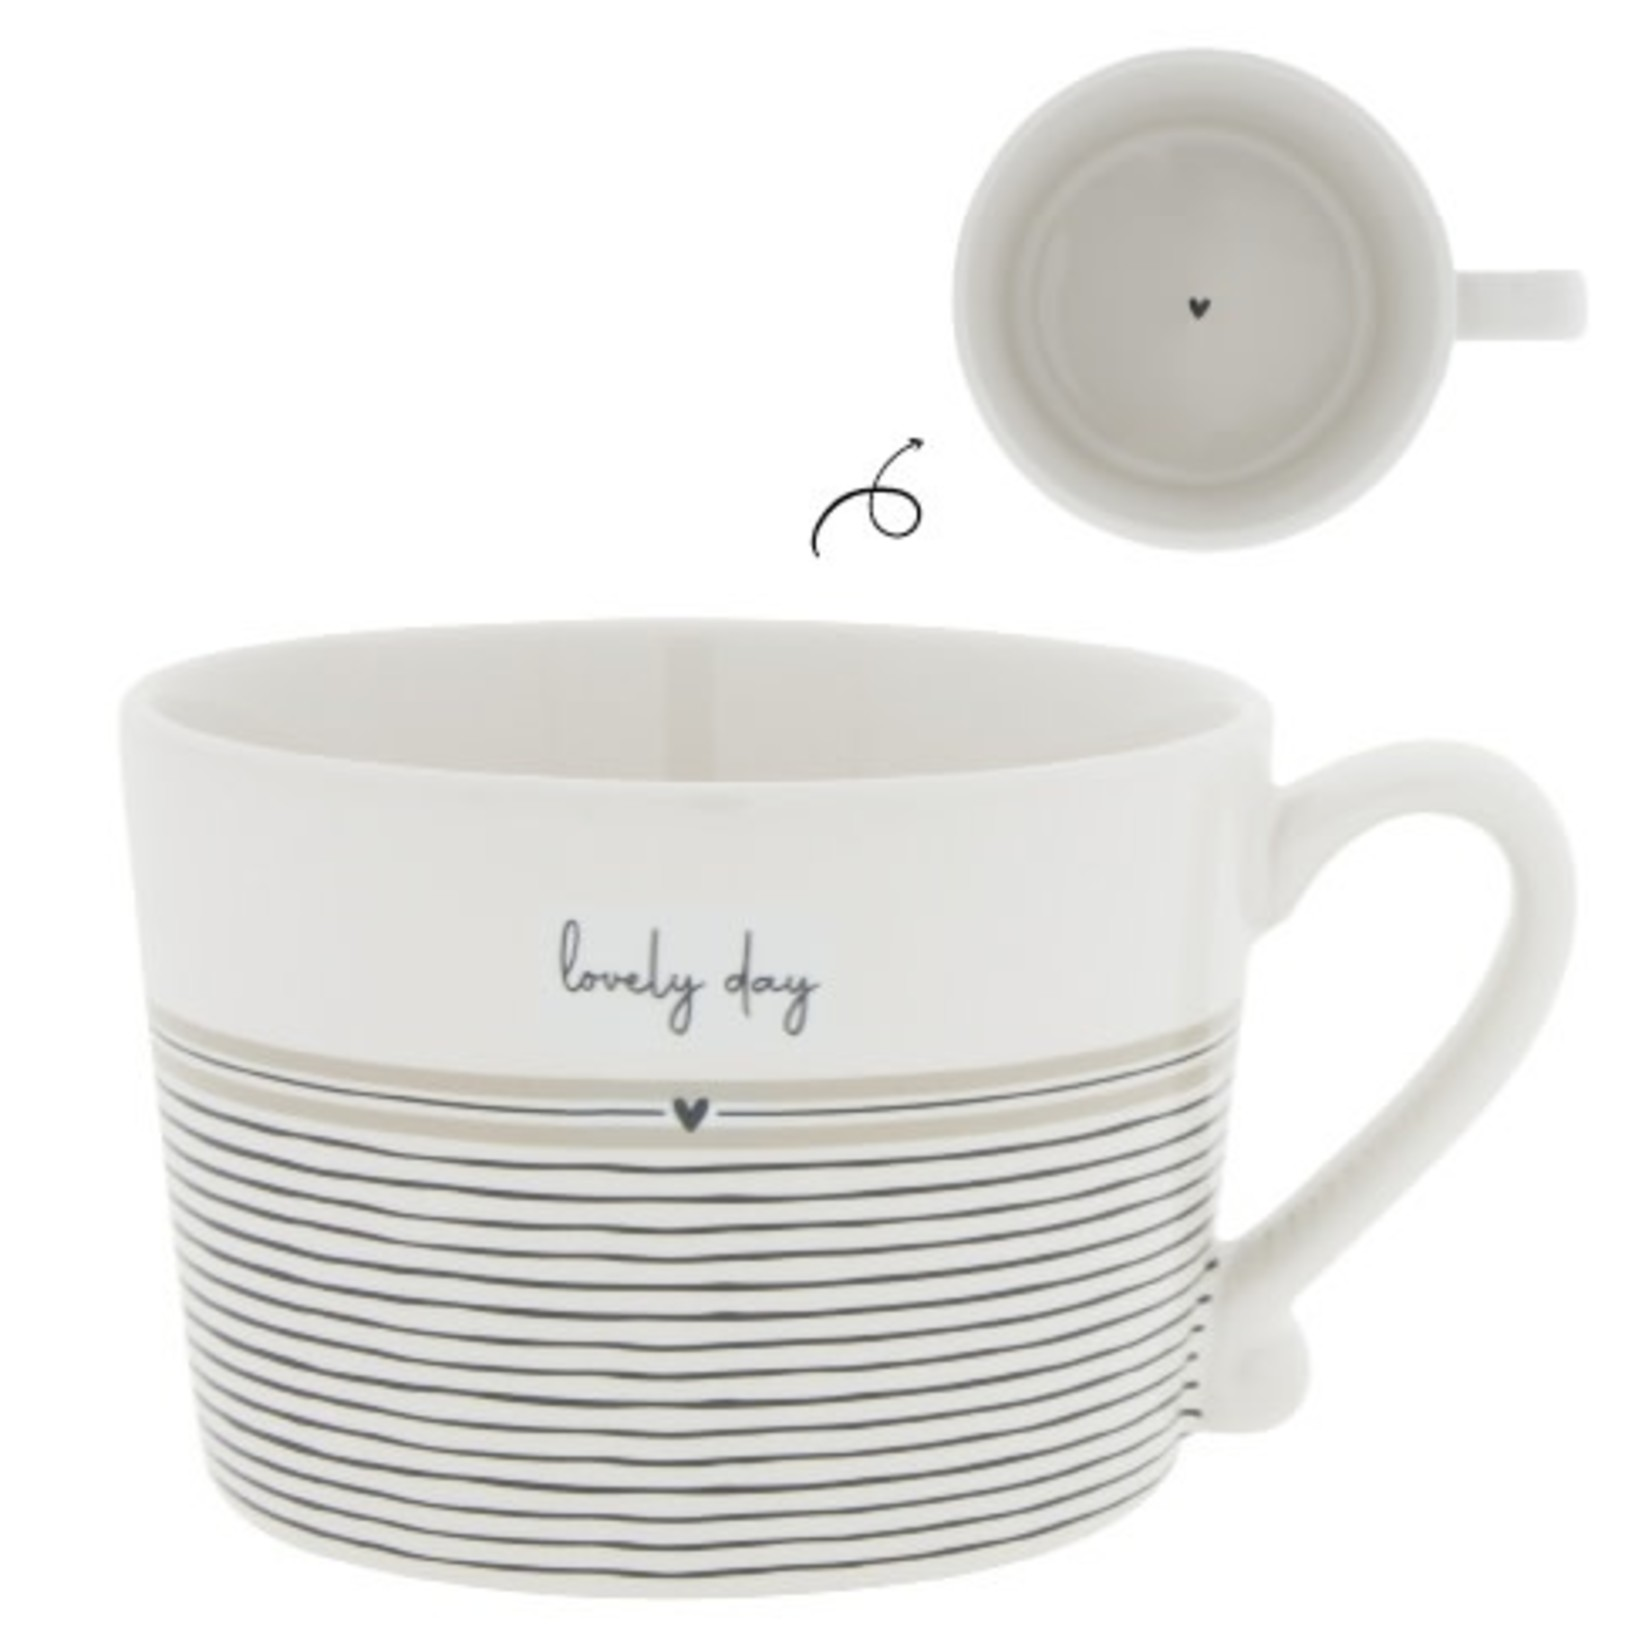 Bastion Collections Cup Lovely Day stripes/white/black/titane 10x8x7 cm